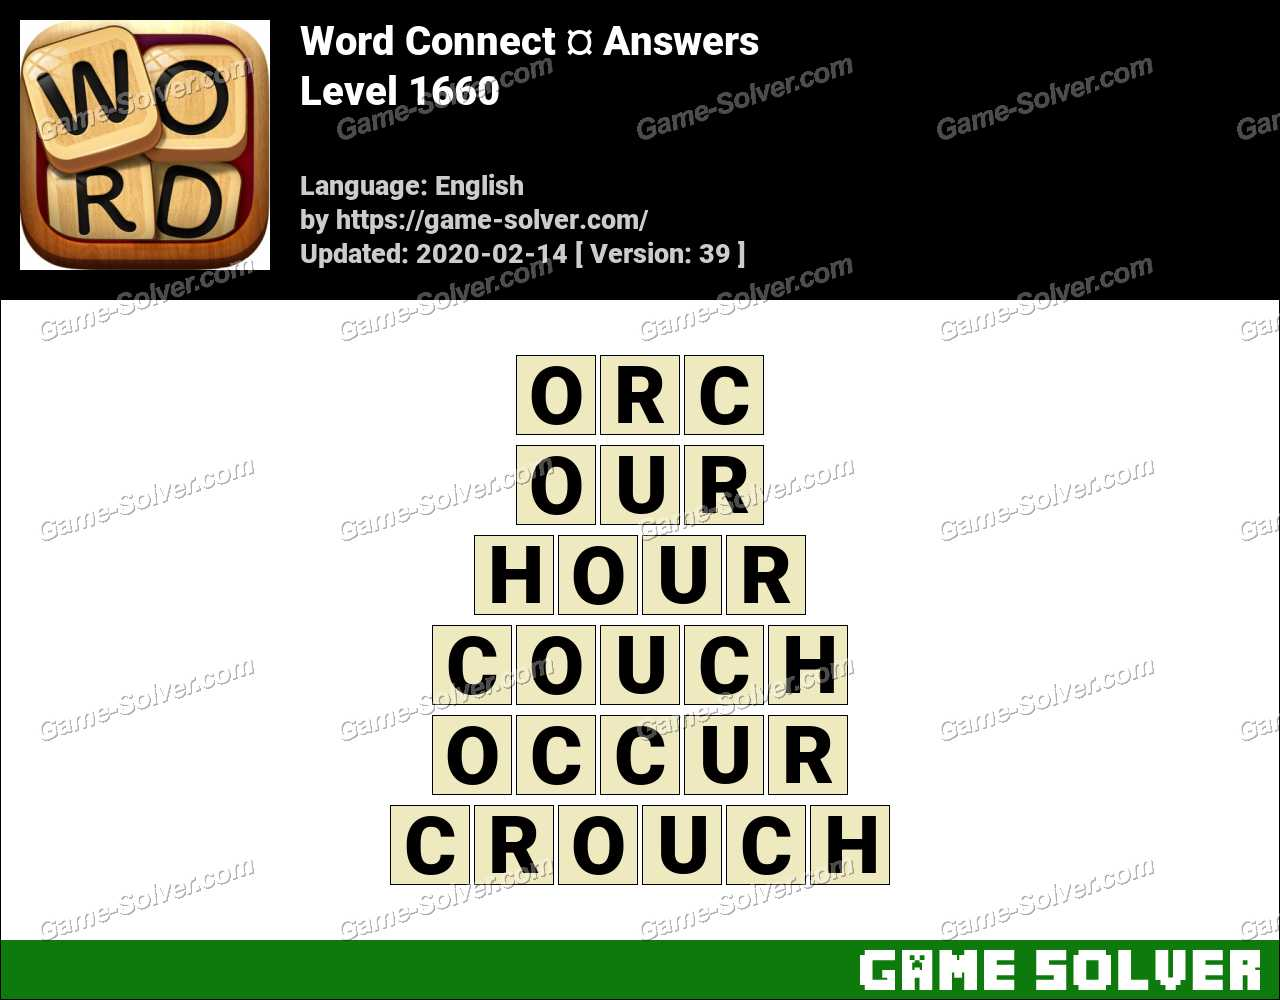 Word Connect Level 1660 Answers